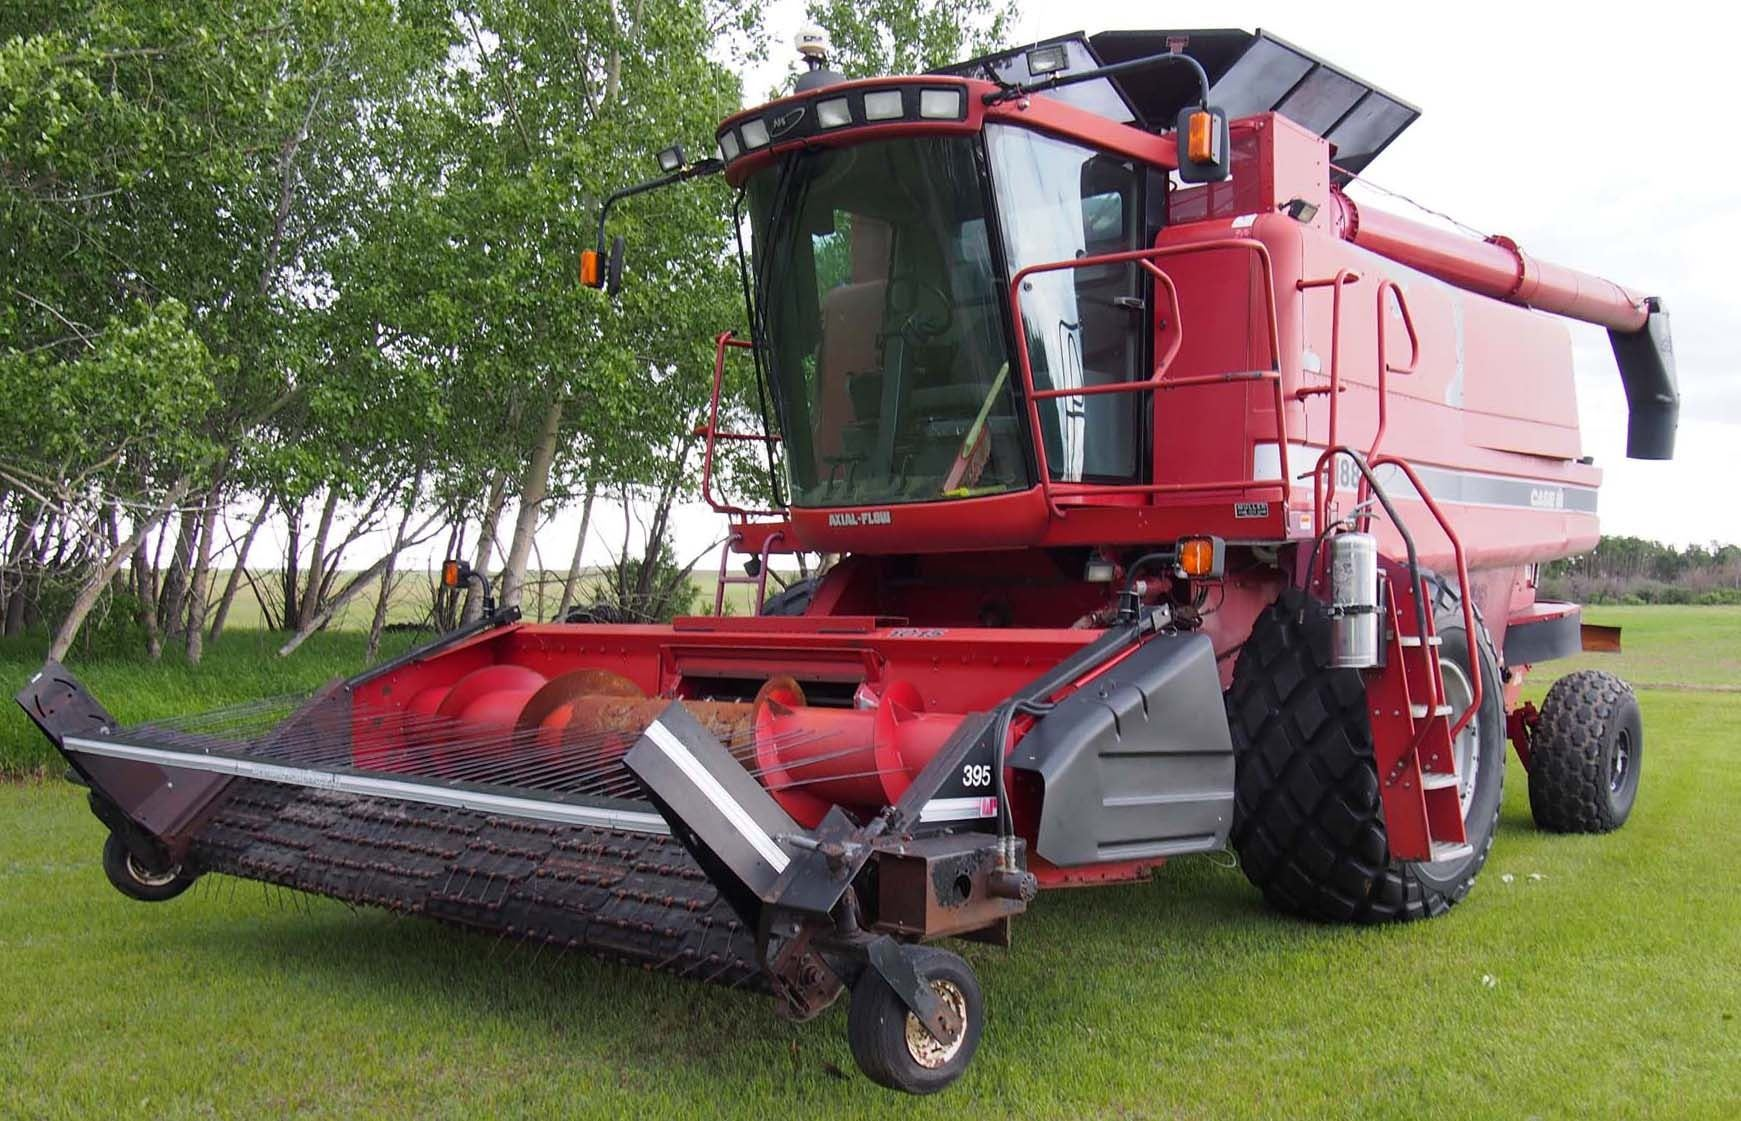 Image 1 : 1996 Case International 2188 Axial Flow Combine, Reddicopp  Chopper, 395 Melrow ...